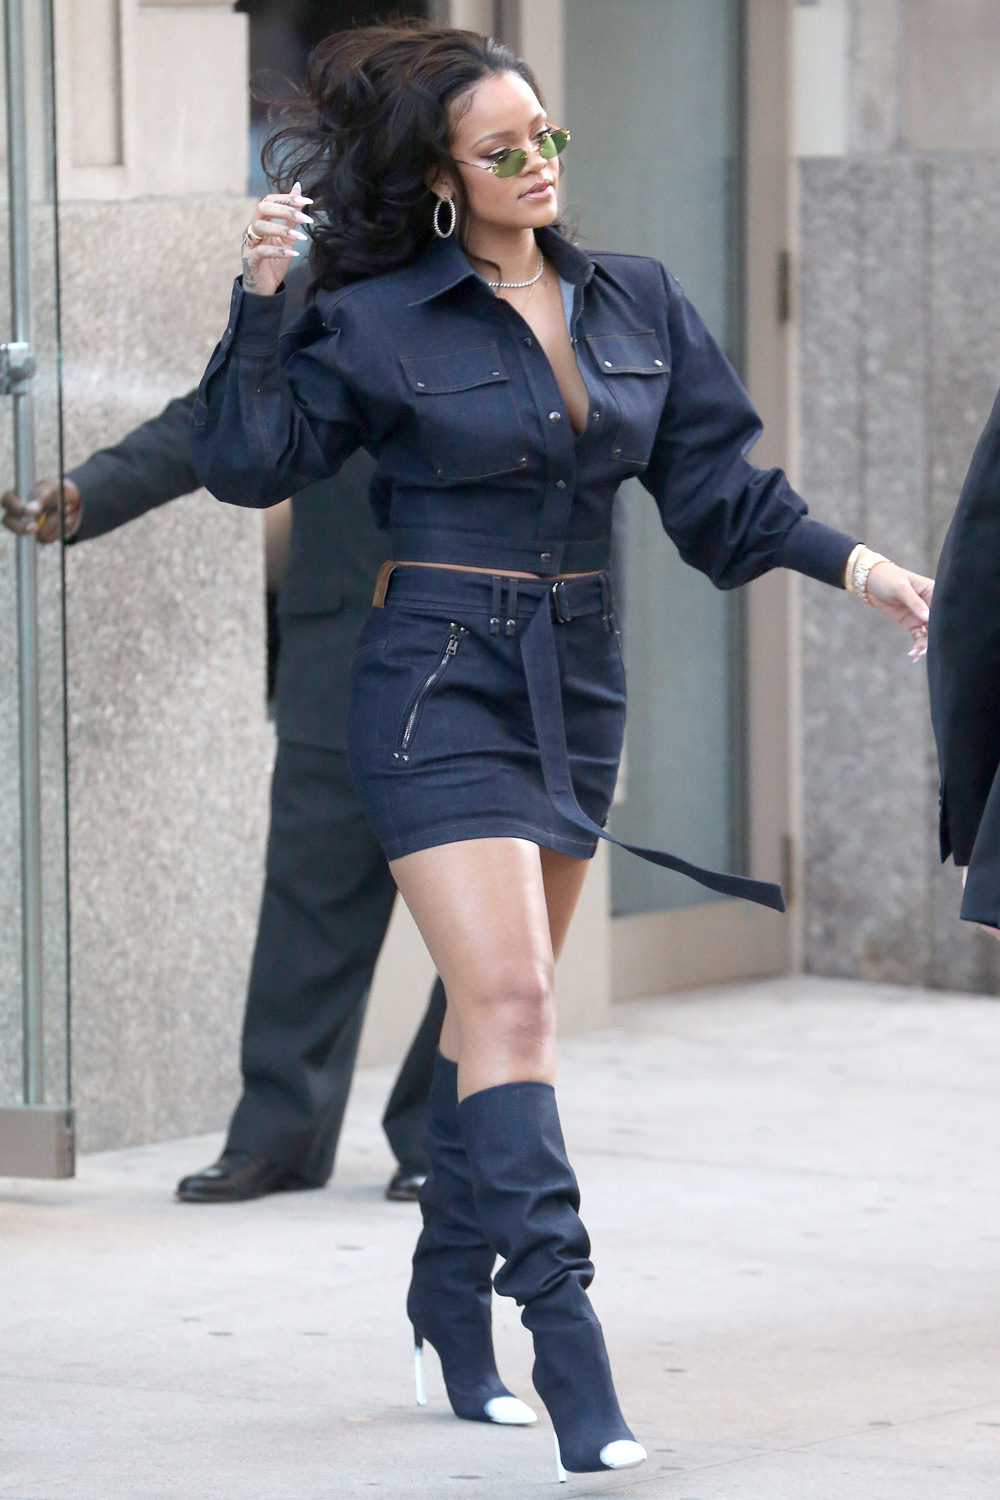 Rihanna Runway Struts The Sidewalks Of Nyc In Tom Ford